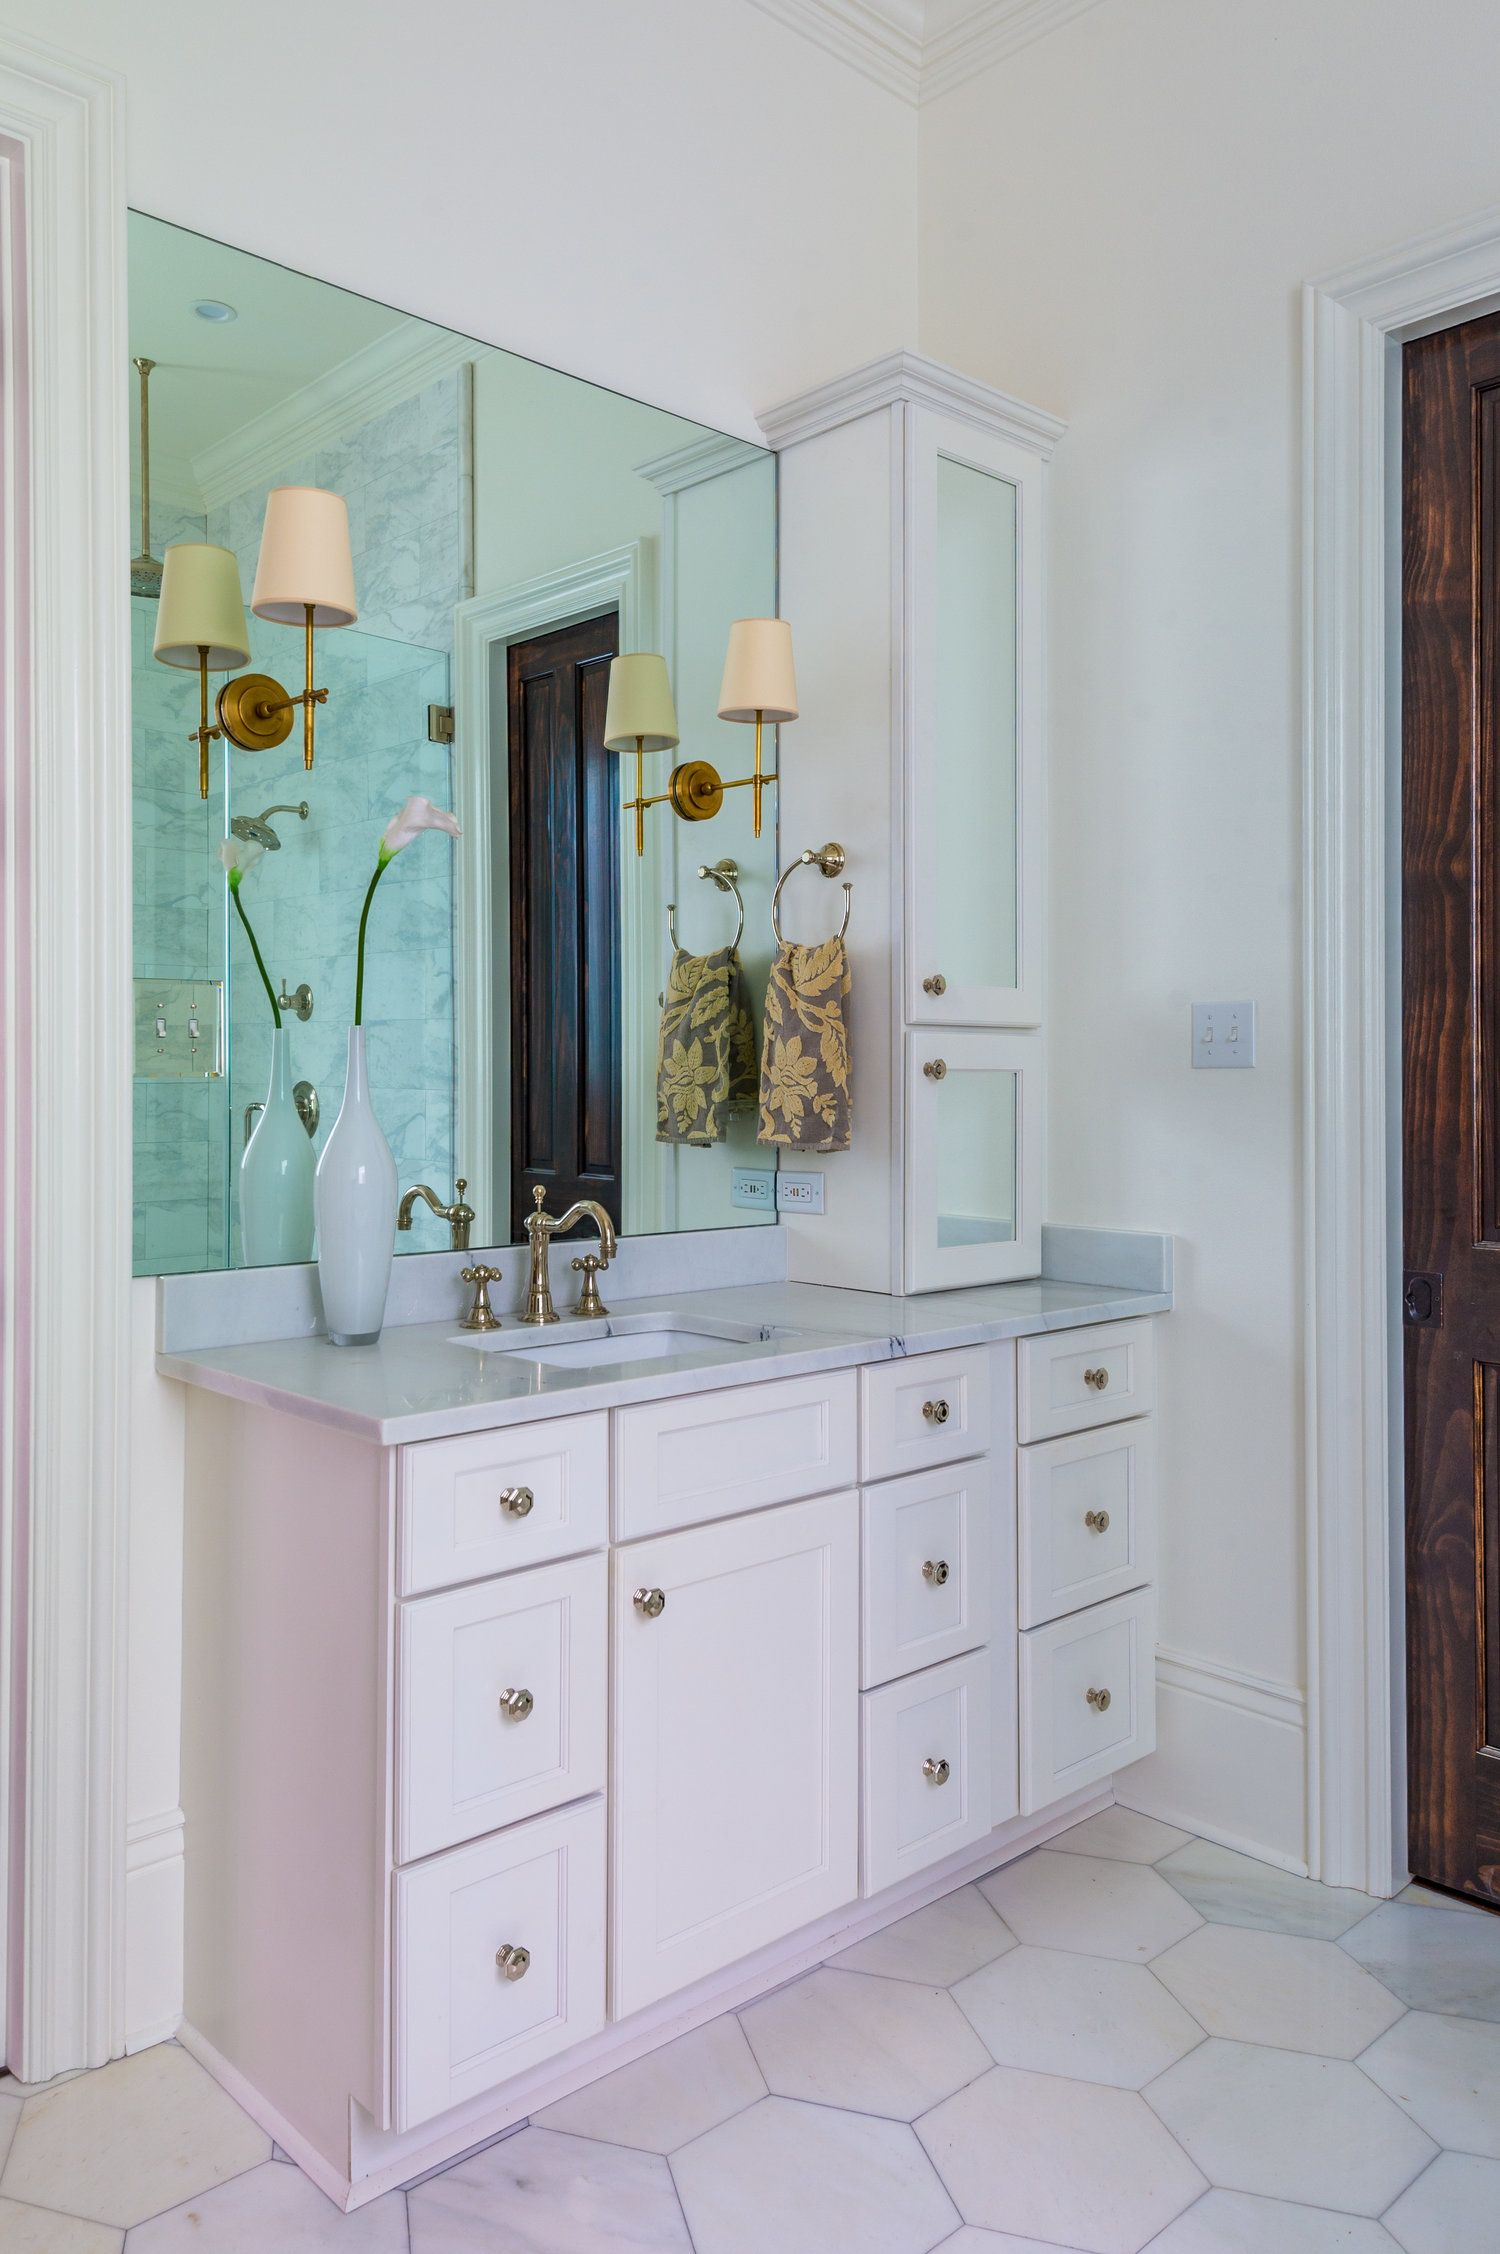 KHB Interiors Master Bathroom Vanity New Orleans Interior Decorator - Bathroom remodel metairie